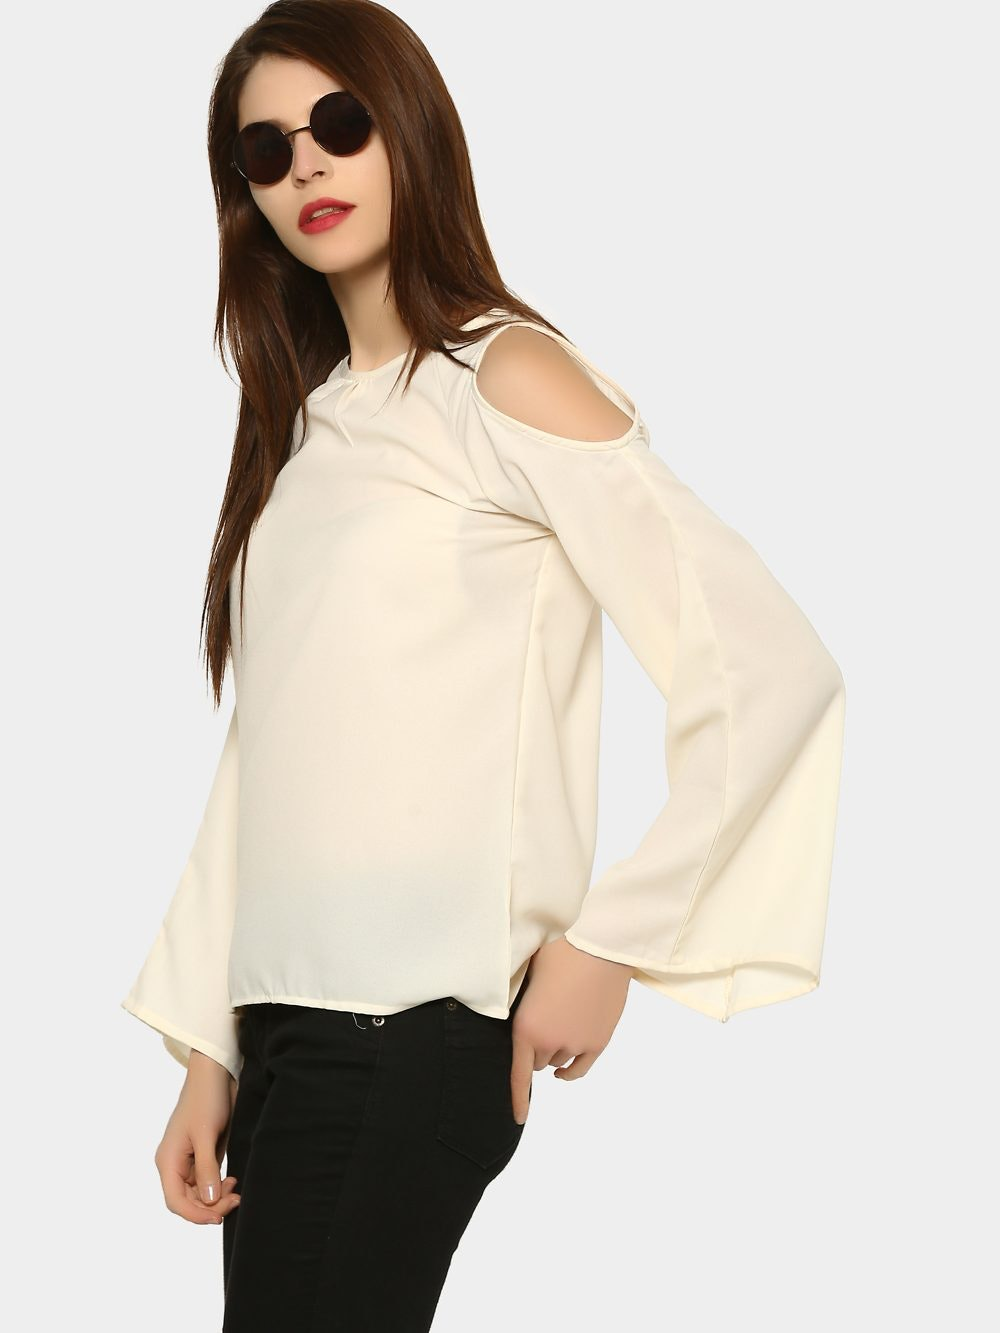 01ffb8634027d abof Women Ivory White Regular Fit Cold Shoulder Bell Sleeve Top